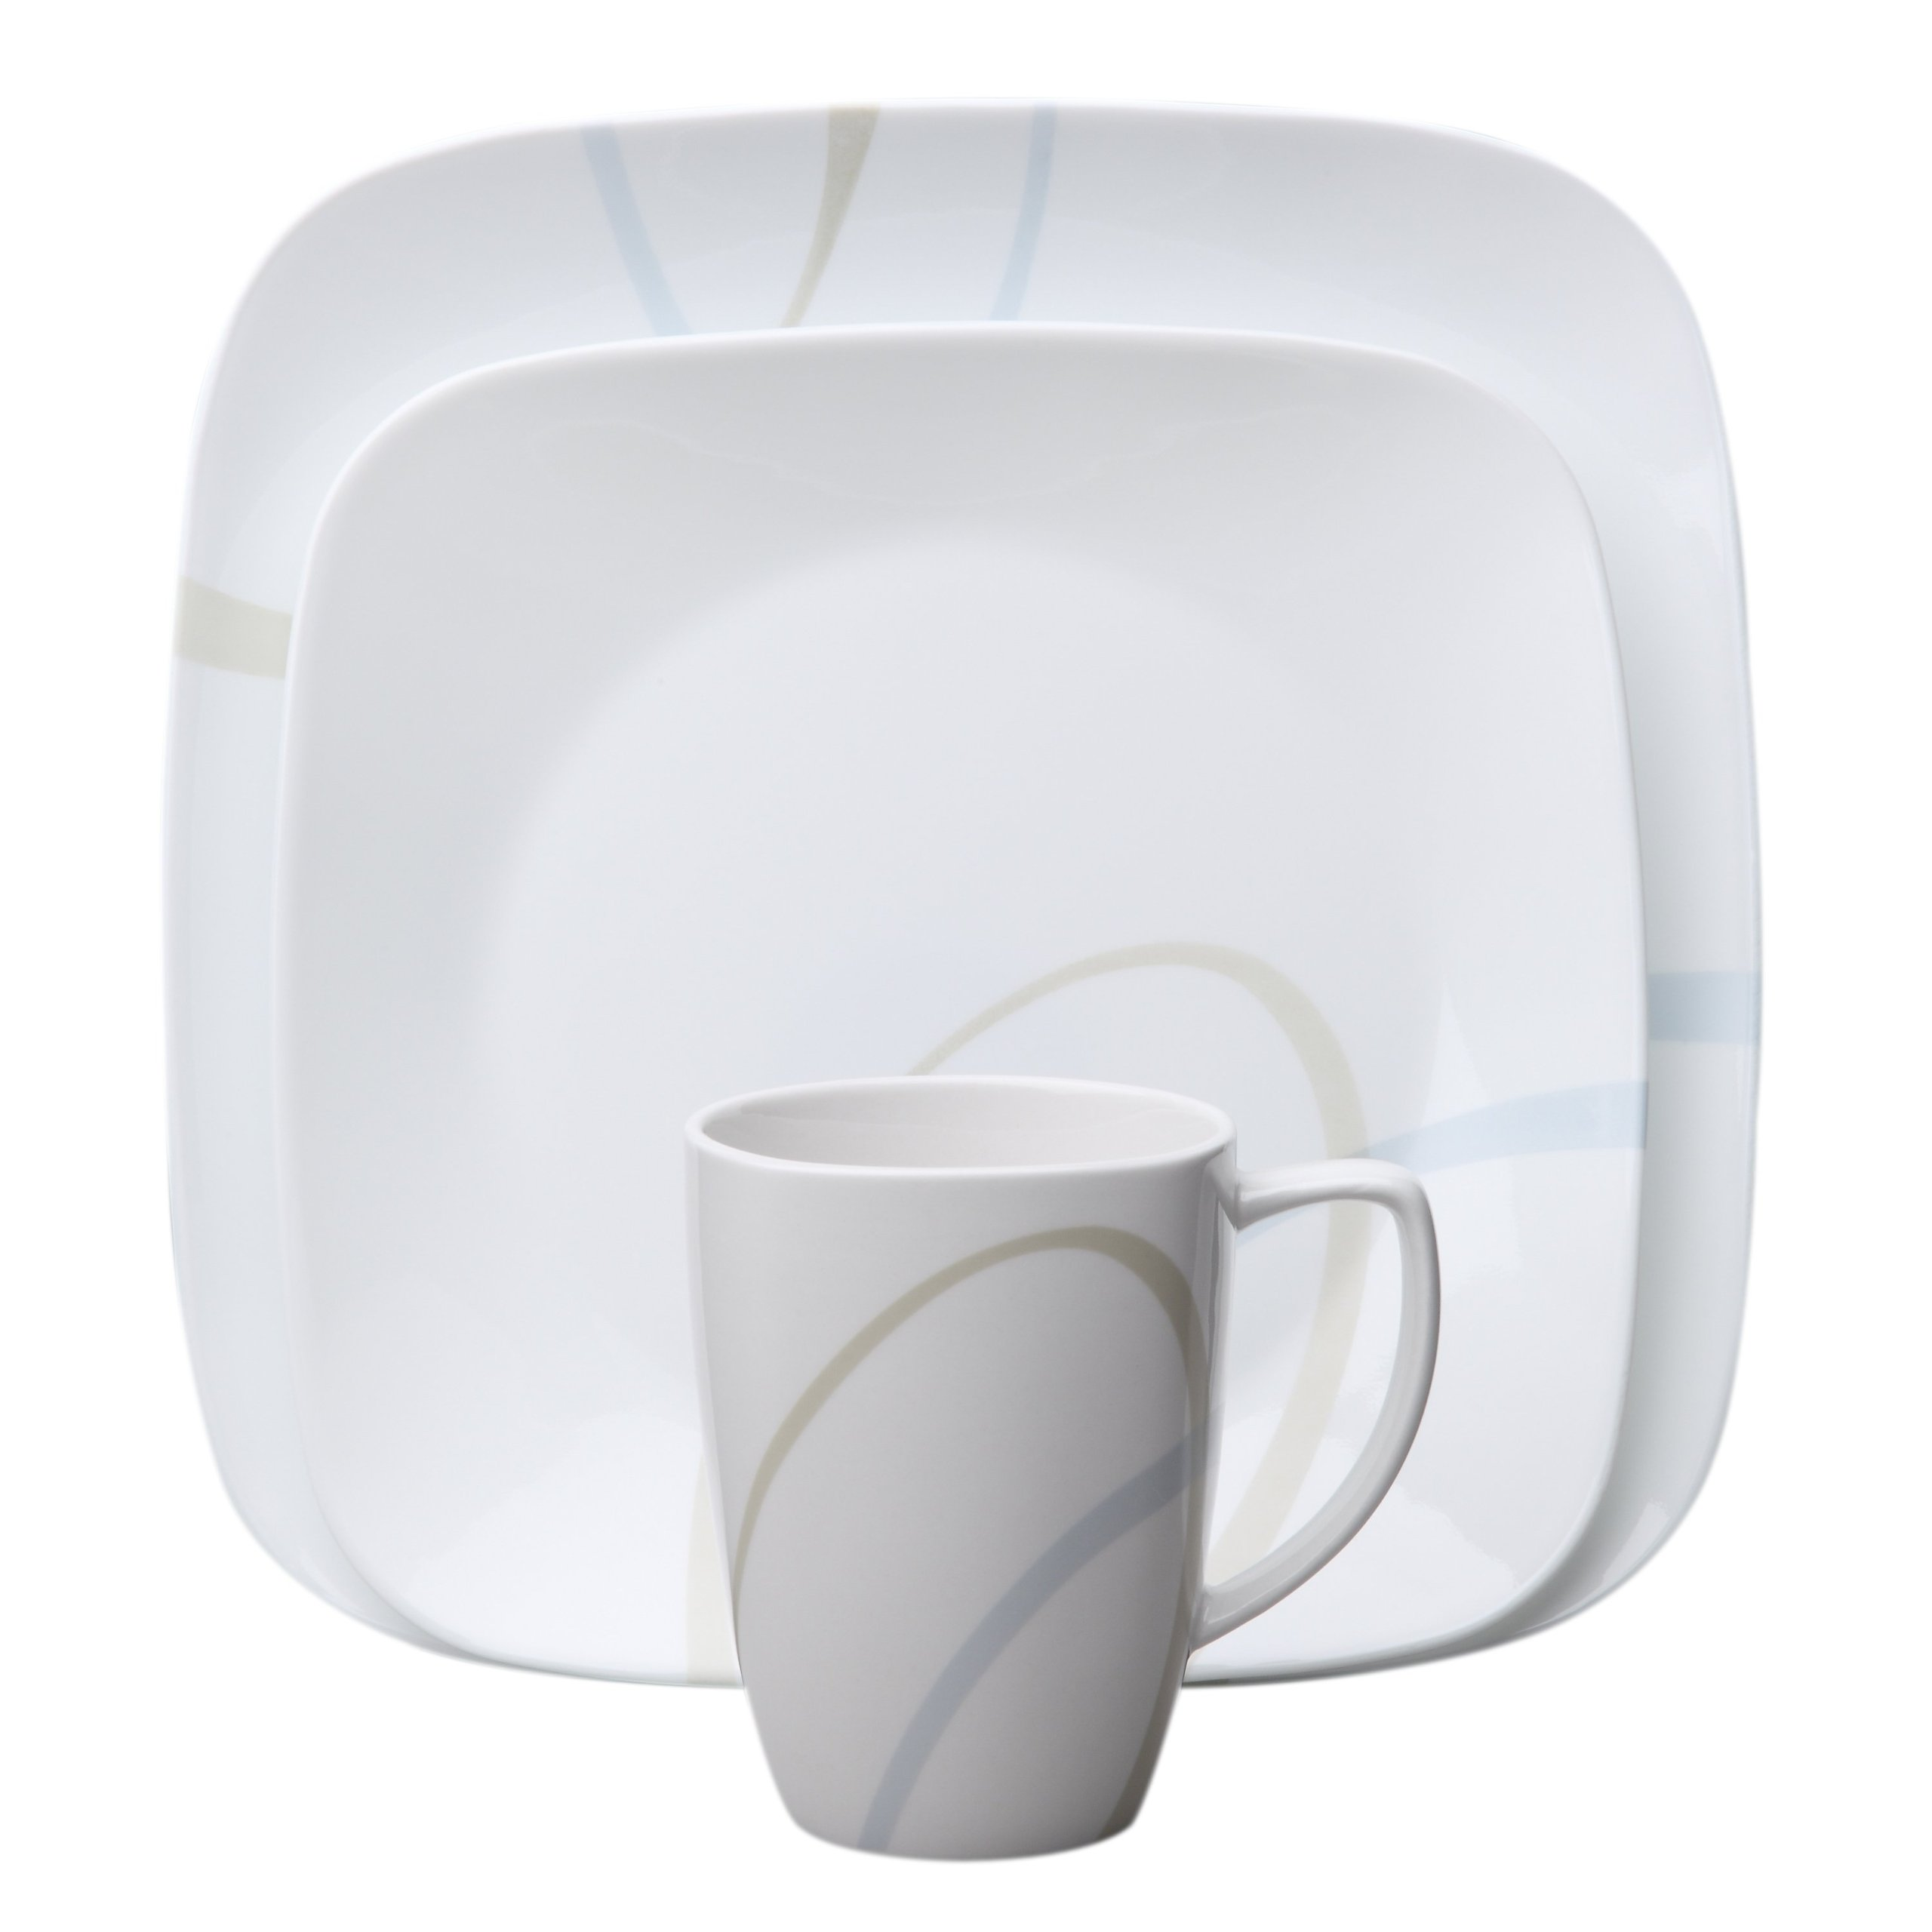 Corelle Square 16-Piece Dinnerware Set,  Sand and Sky, Service for 4 by Corelle